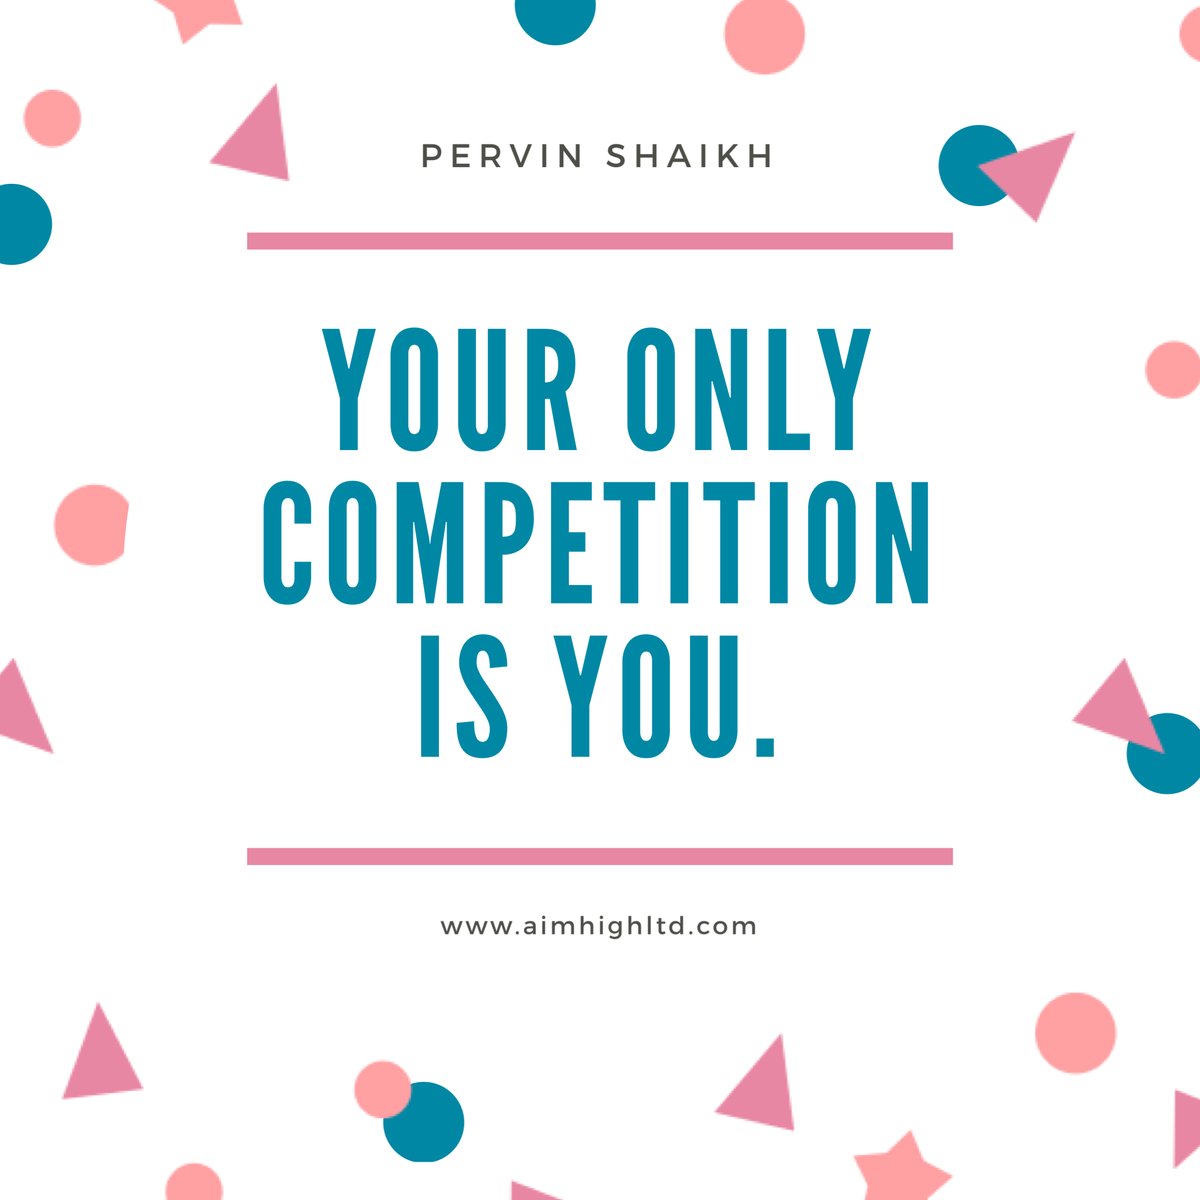 Your only competition is you. Compare yourself with you and no one else.   #AimHigh #makeyourownlane #entrepreneur #leadership #successtrain #mpgvip #defstar5 #thursdaymotivationpic.twitter.com/ADtU6Sdoqw